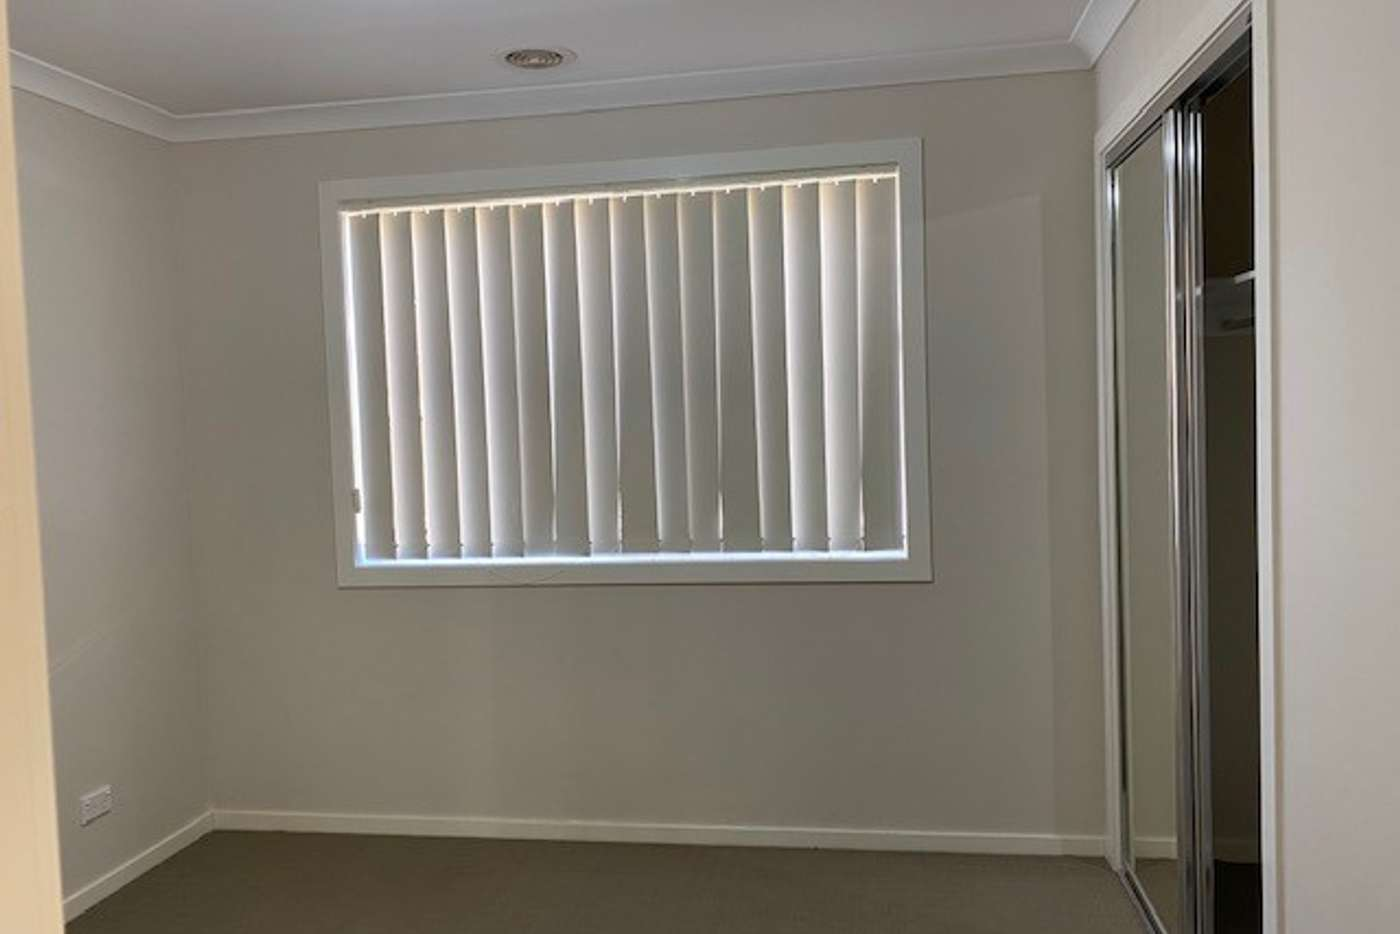 Seventh view of Homely house listing, 9 Isabella Way, Tarneit VIC 3029